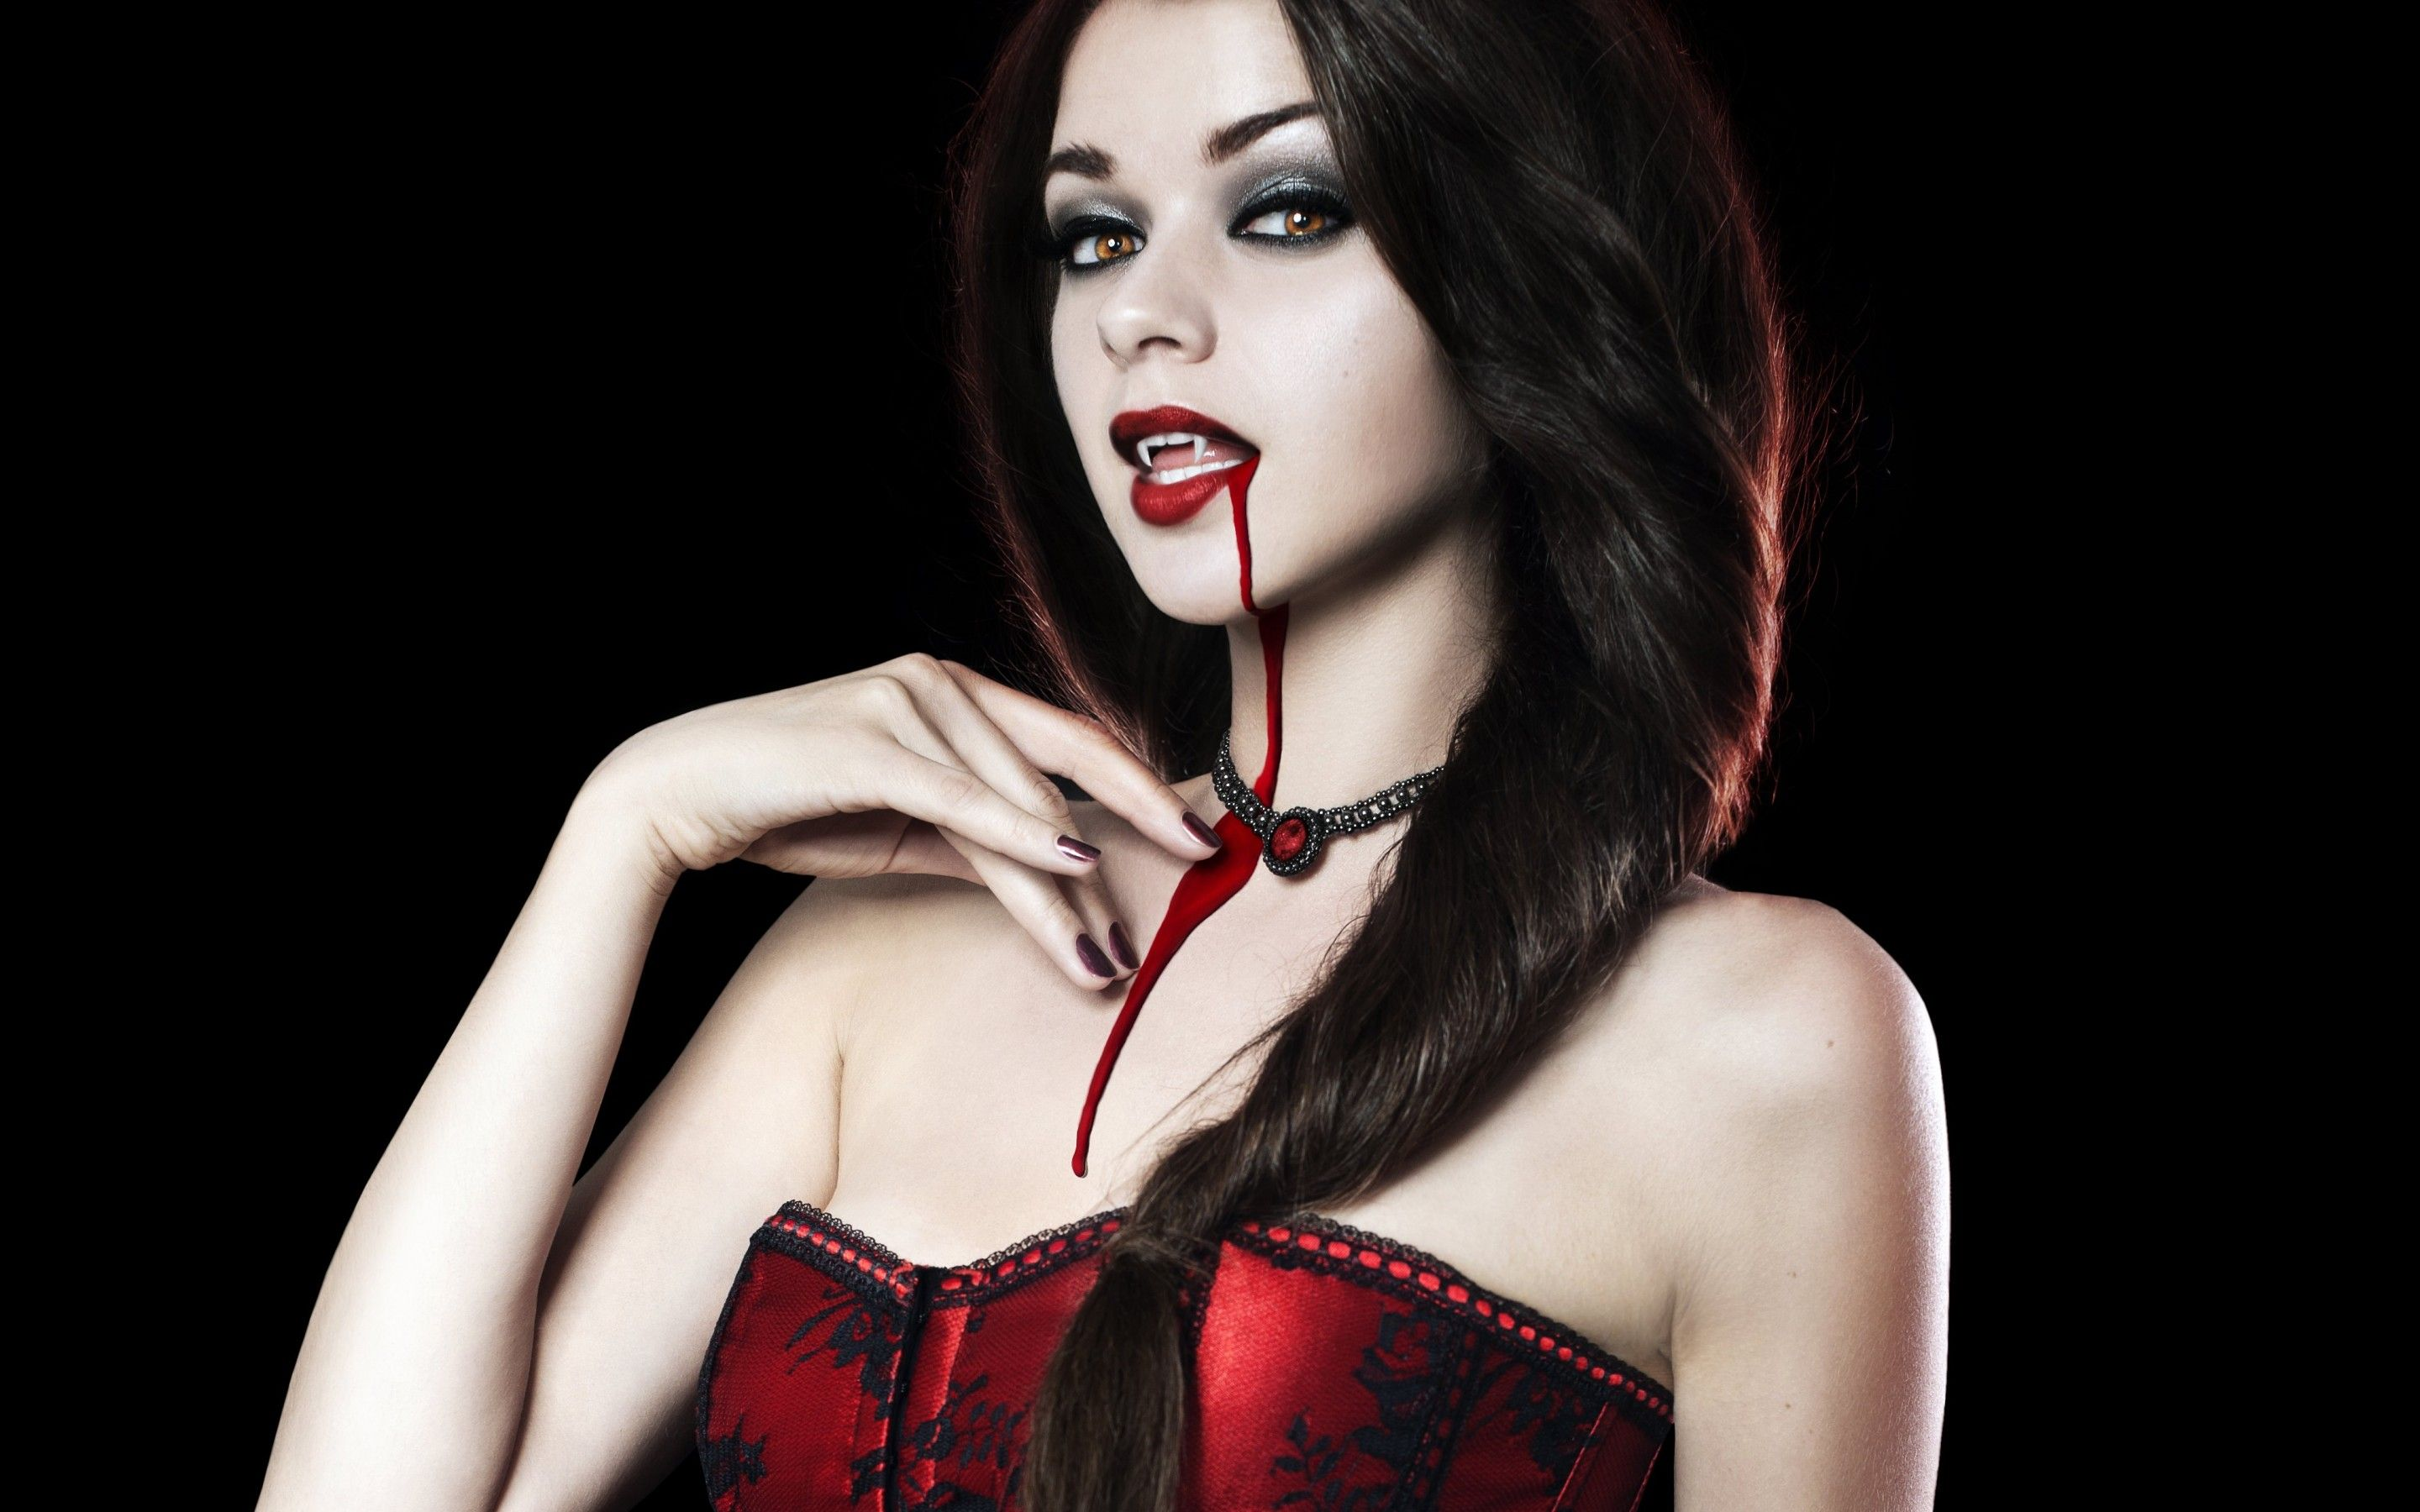 Vampire girl hot fucks photo